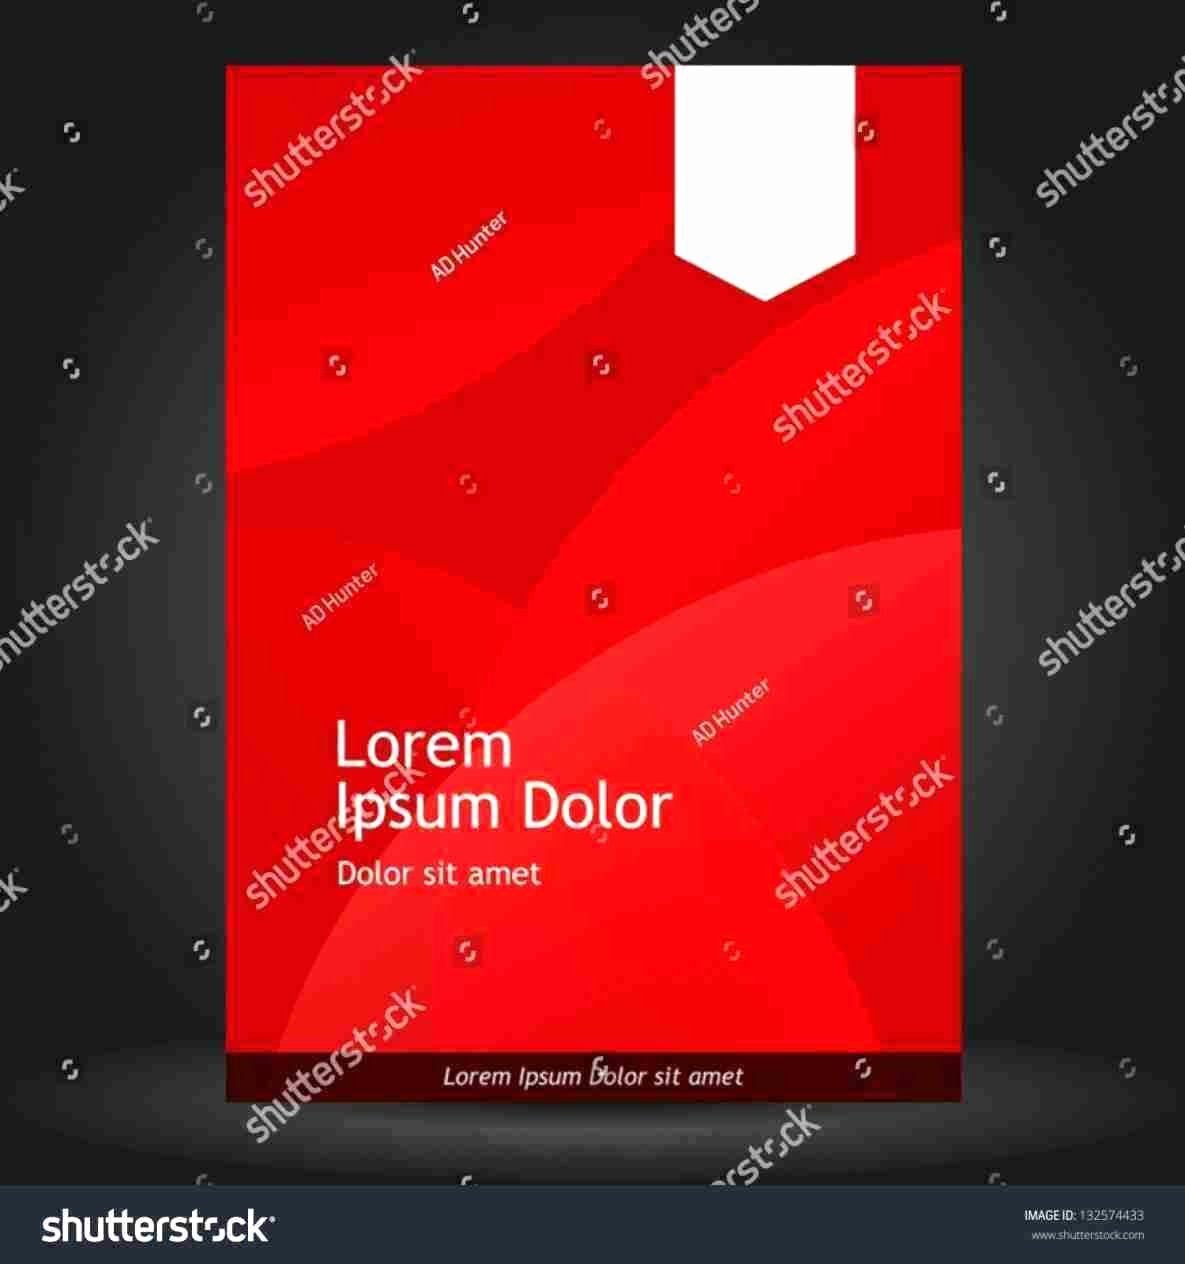 Red Carpet Backdrop Template Inspirational Template Red Carpet Backdrop Template